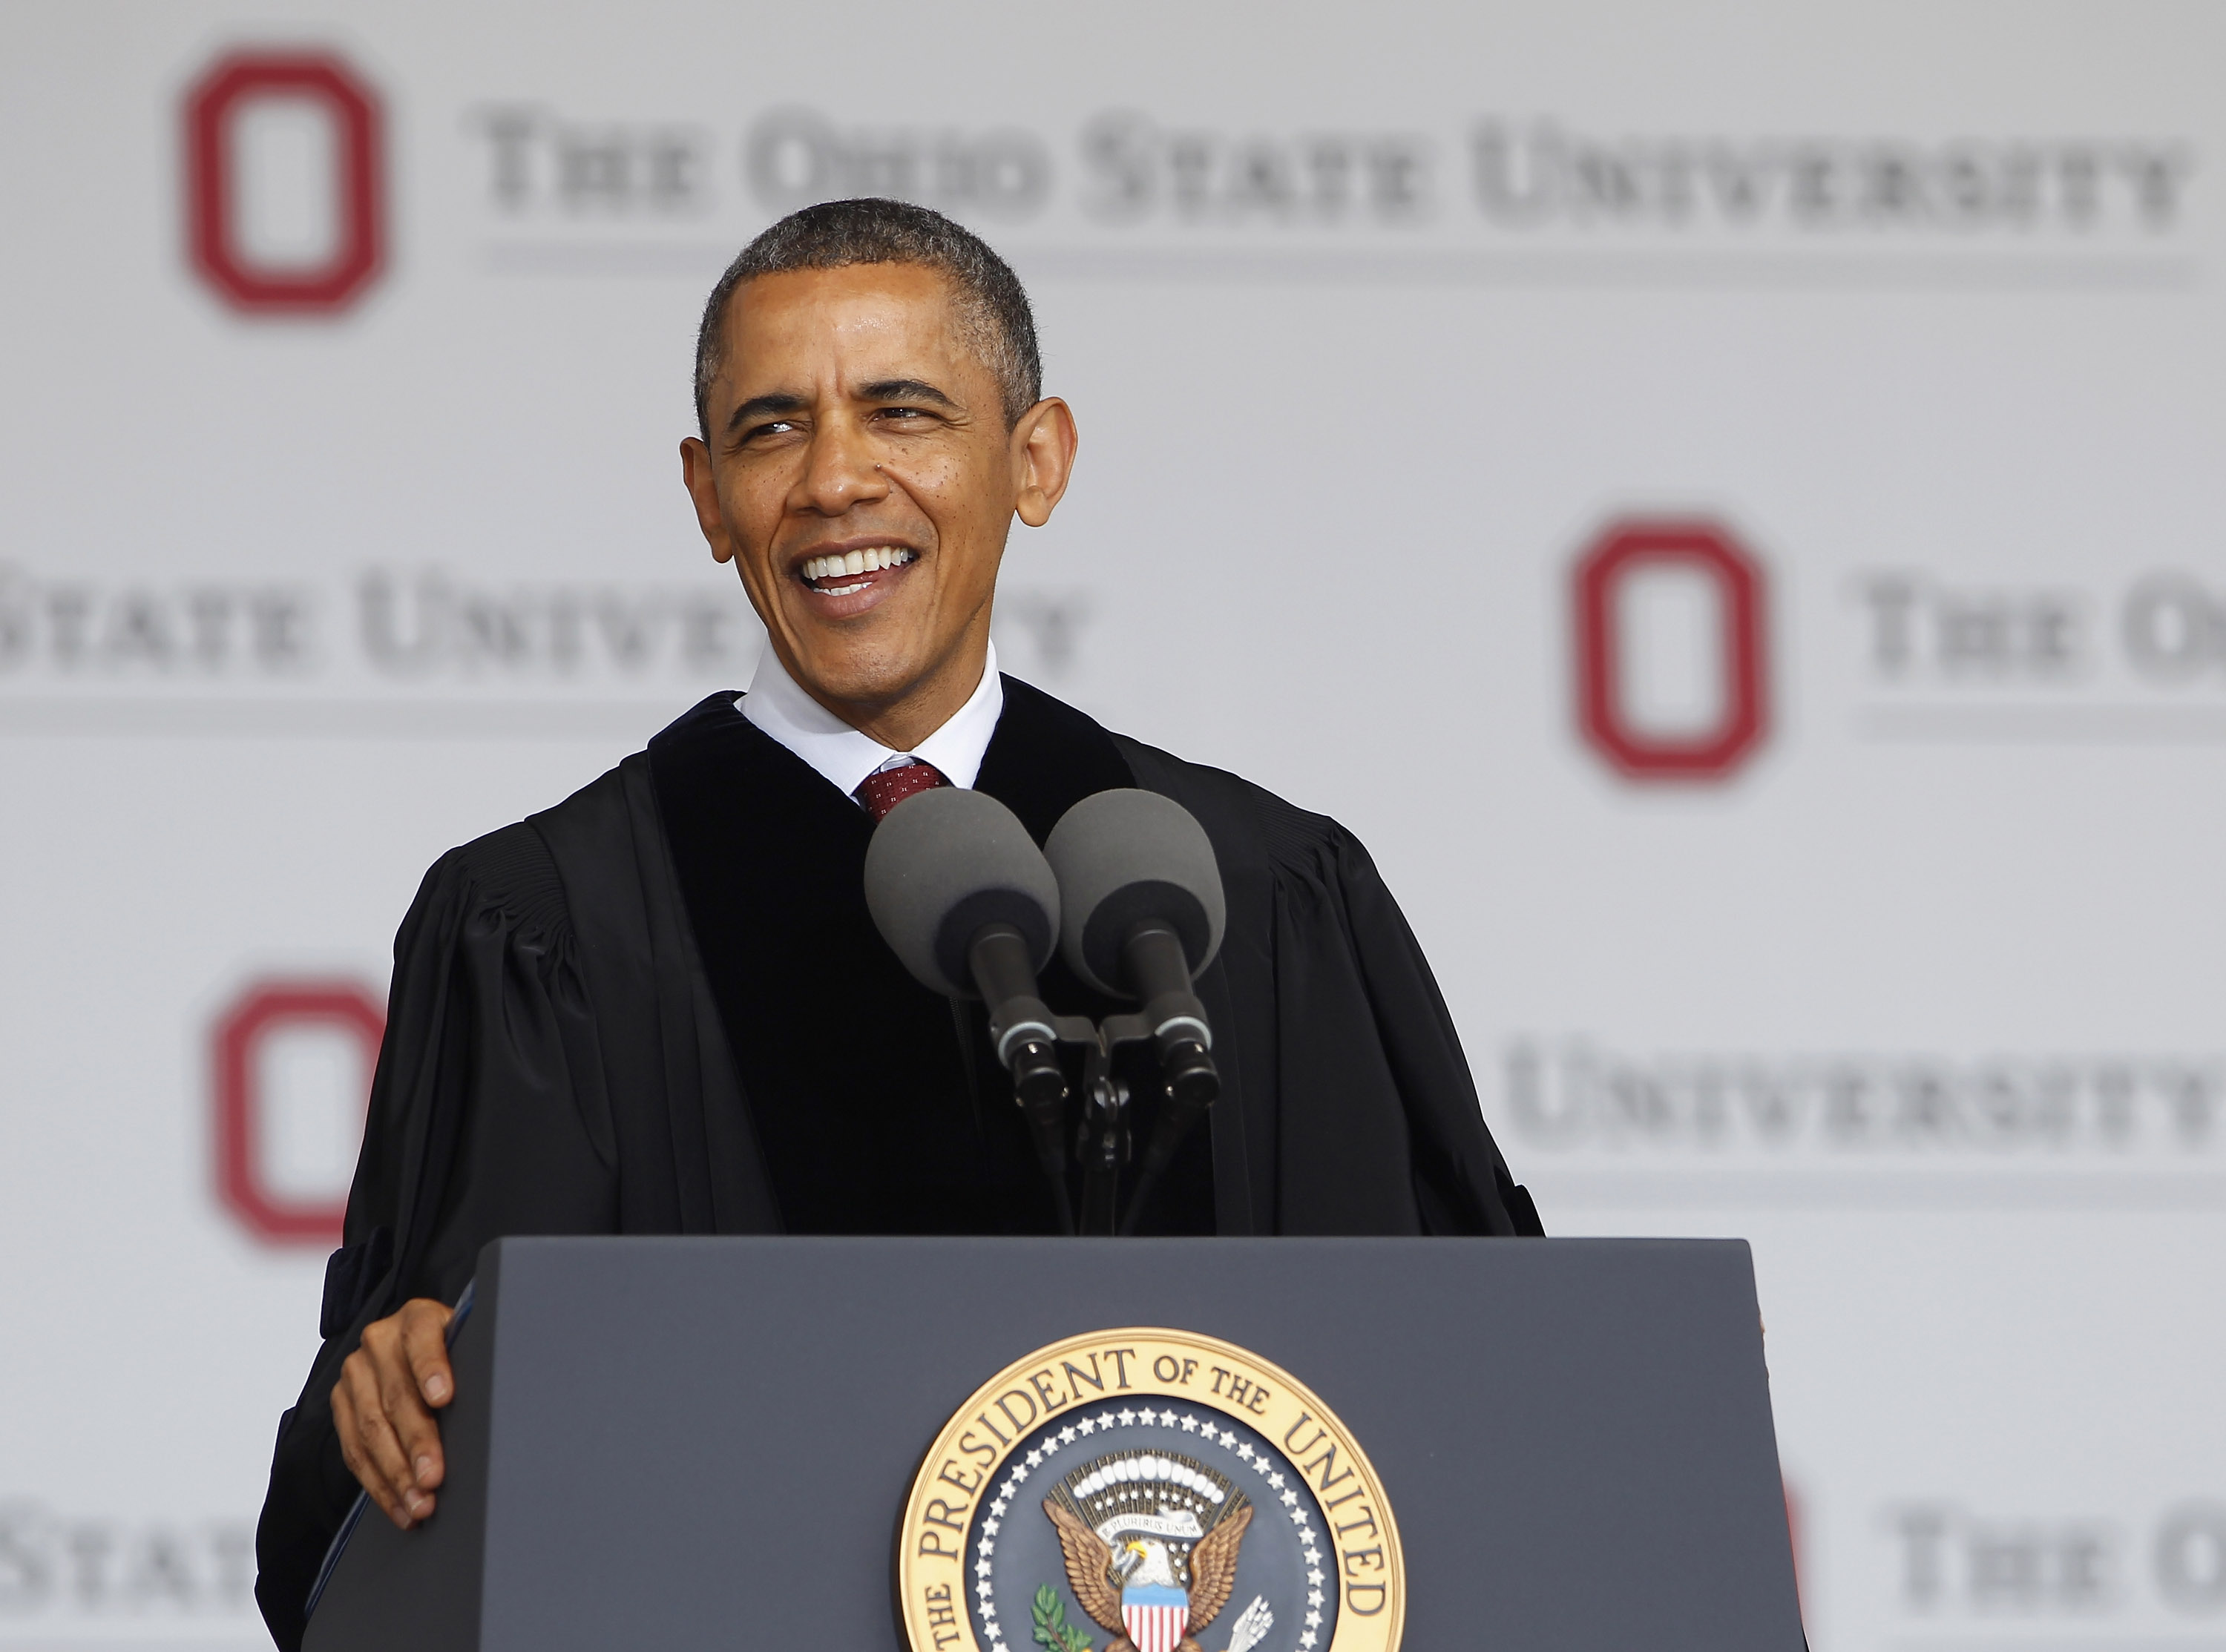 President Barack Obama gives the commencement address to the graduating class of The Ohio State University on May 5, 2013 in Columbus, Ohio.